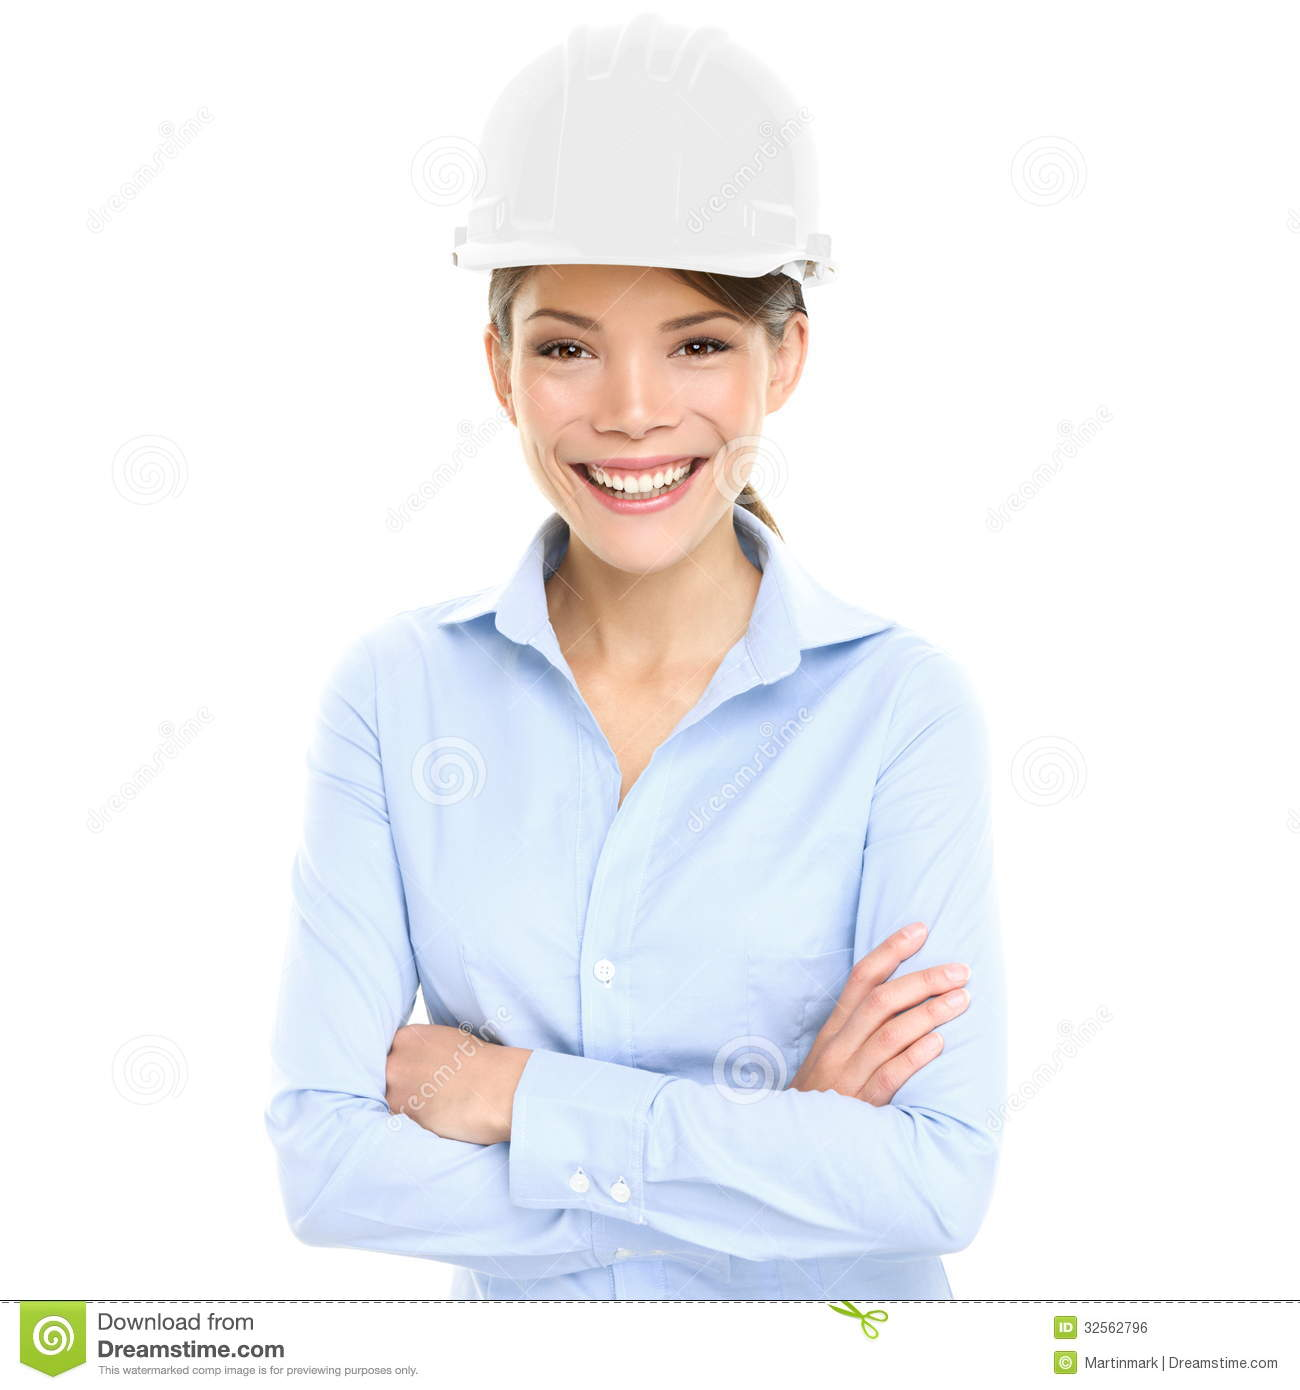 architect-engineer-entrepreneur-business-woman-portrait-smiling-happy-proud-confident-young-female-multiracial-asian-32562796.jpg